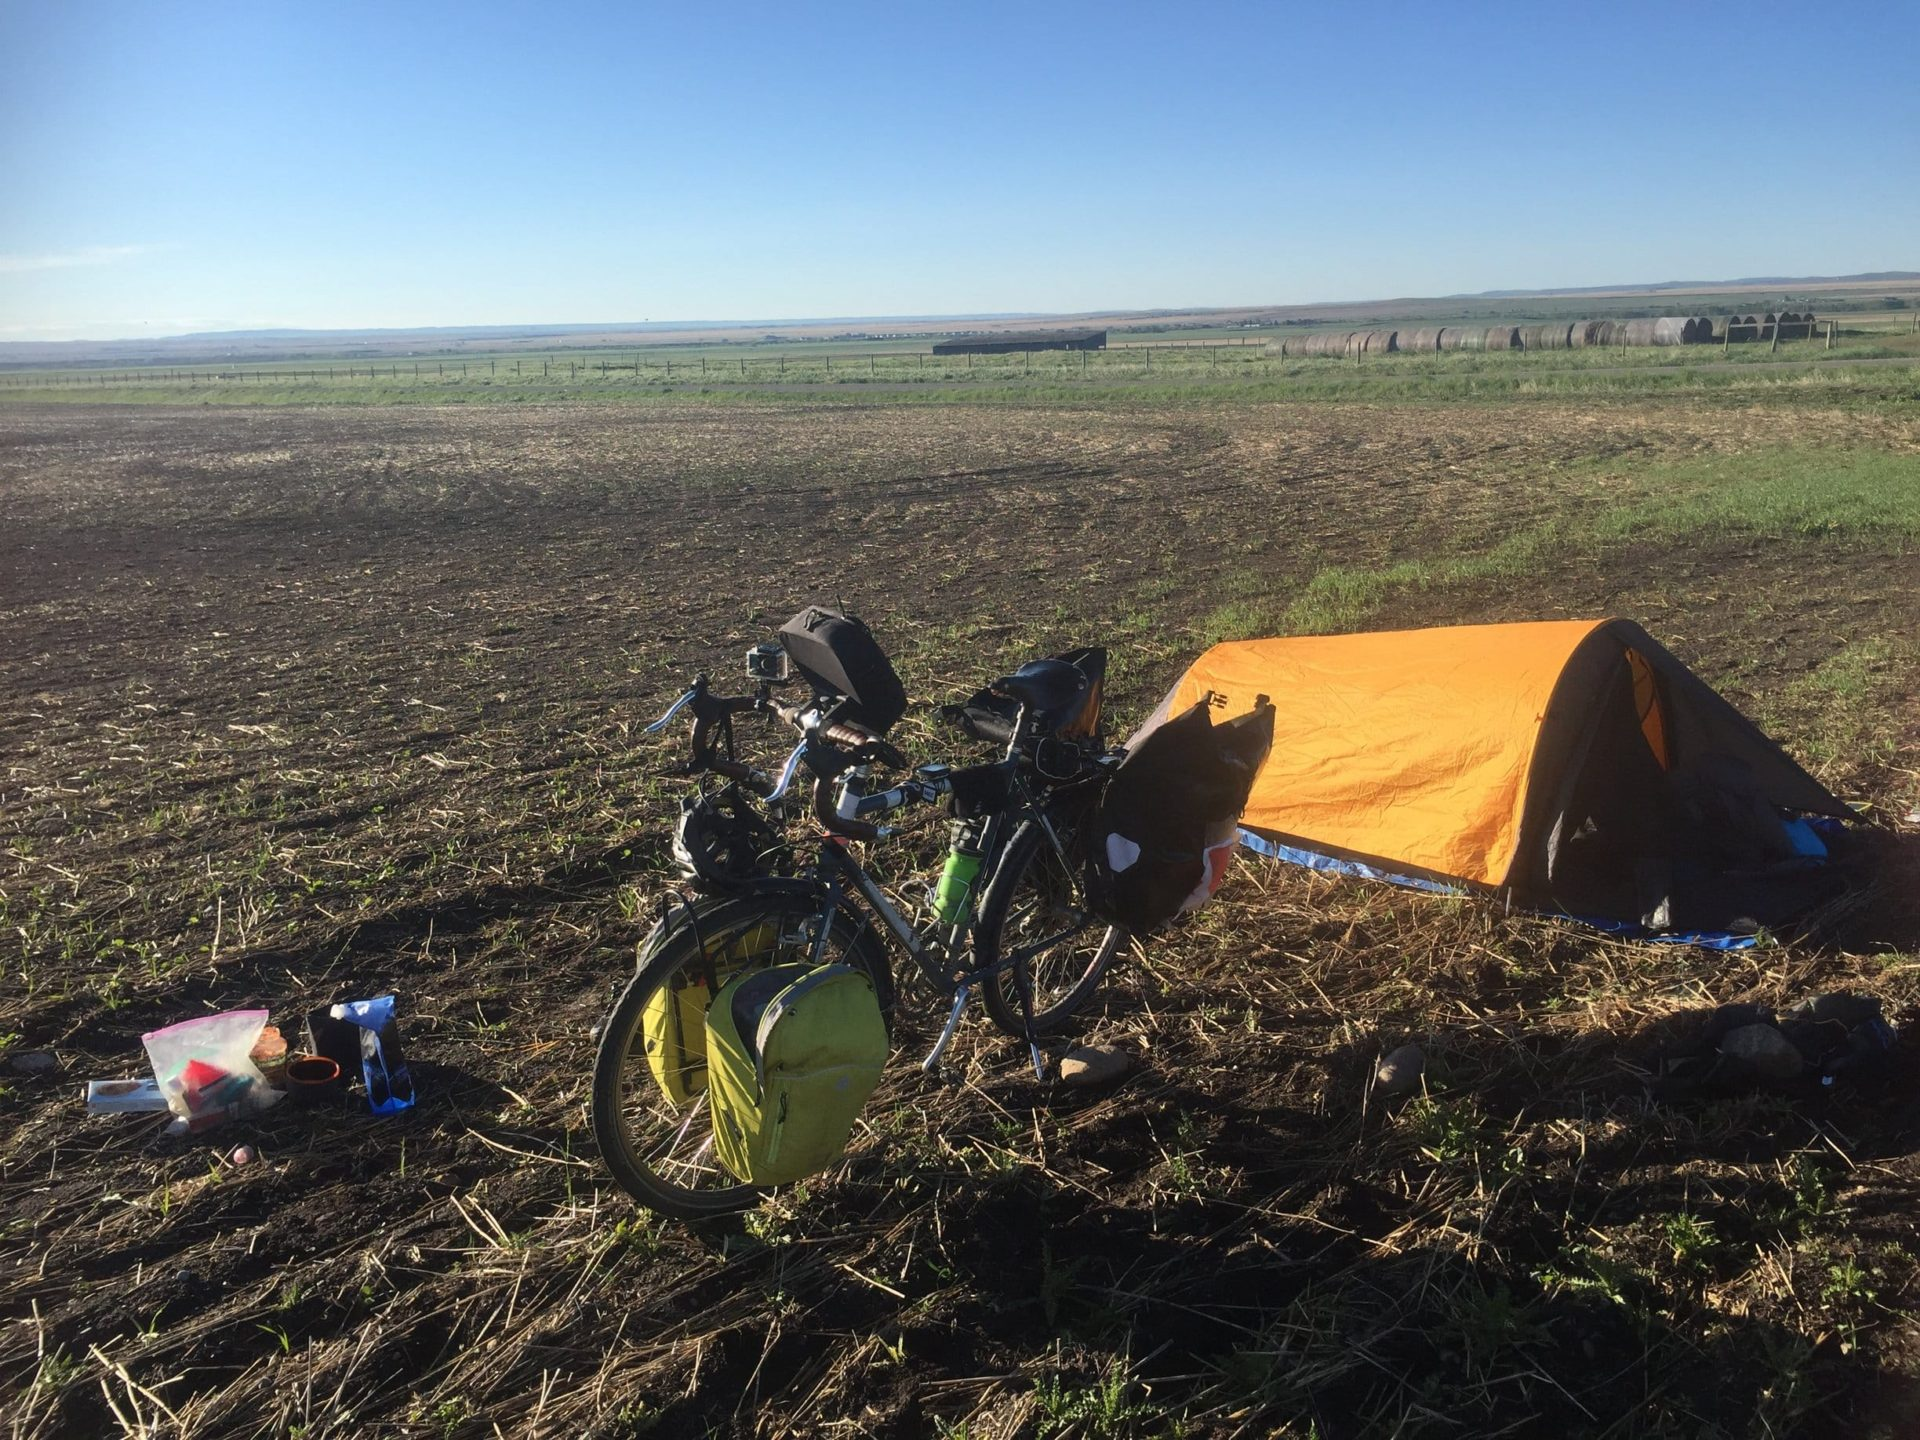 Camp setup in a friendly Saskatchewan farmer's field.